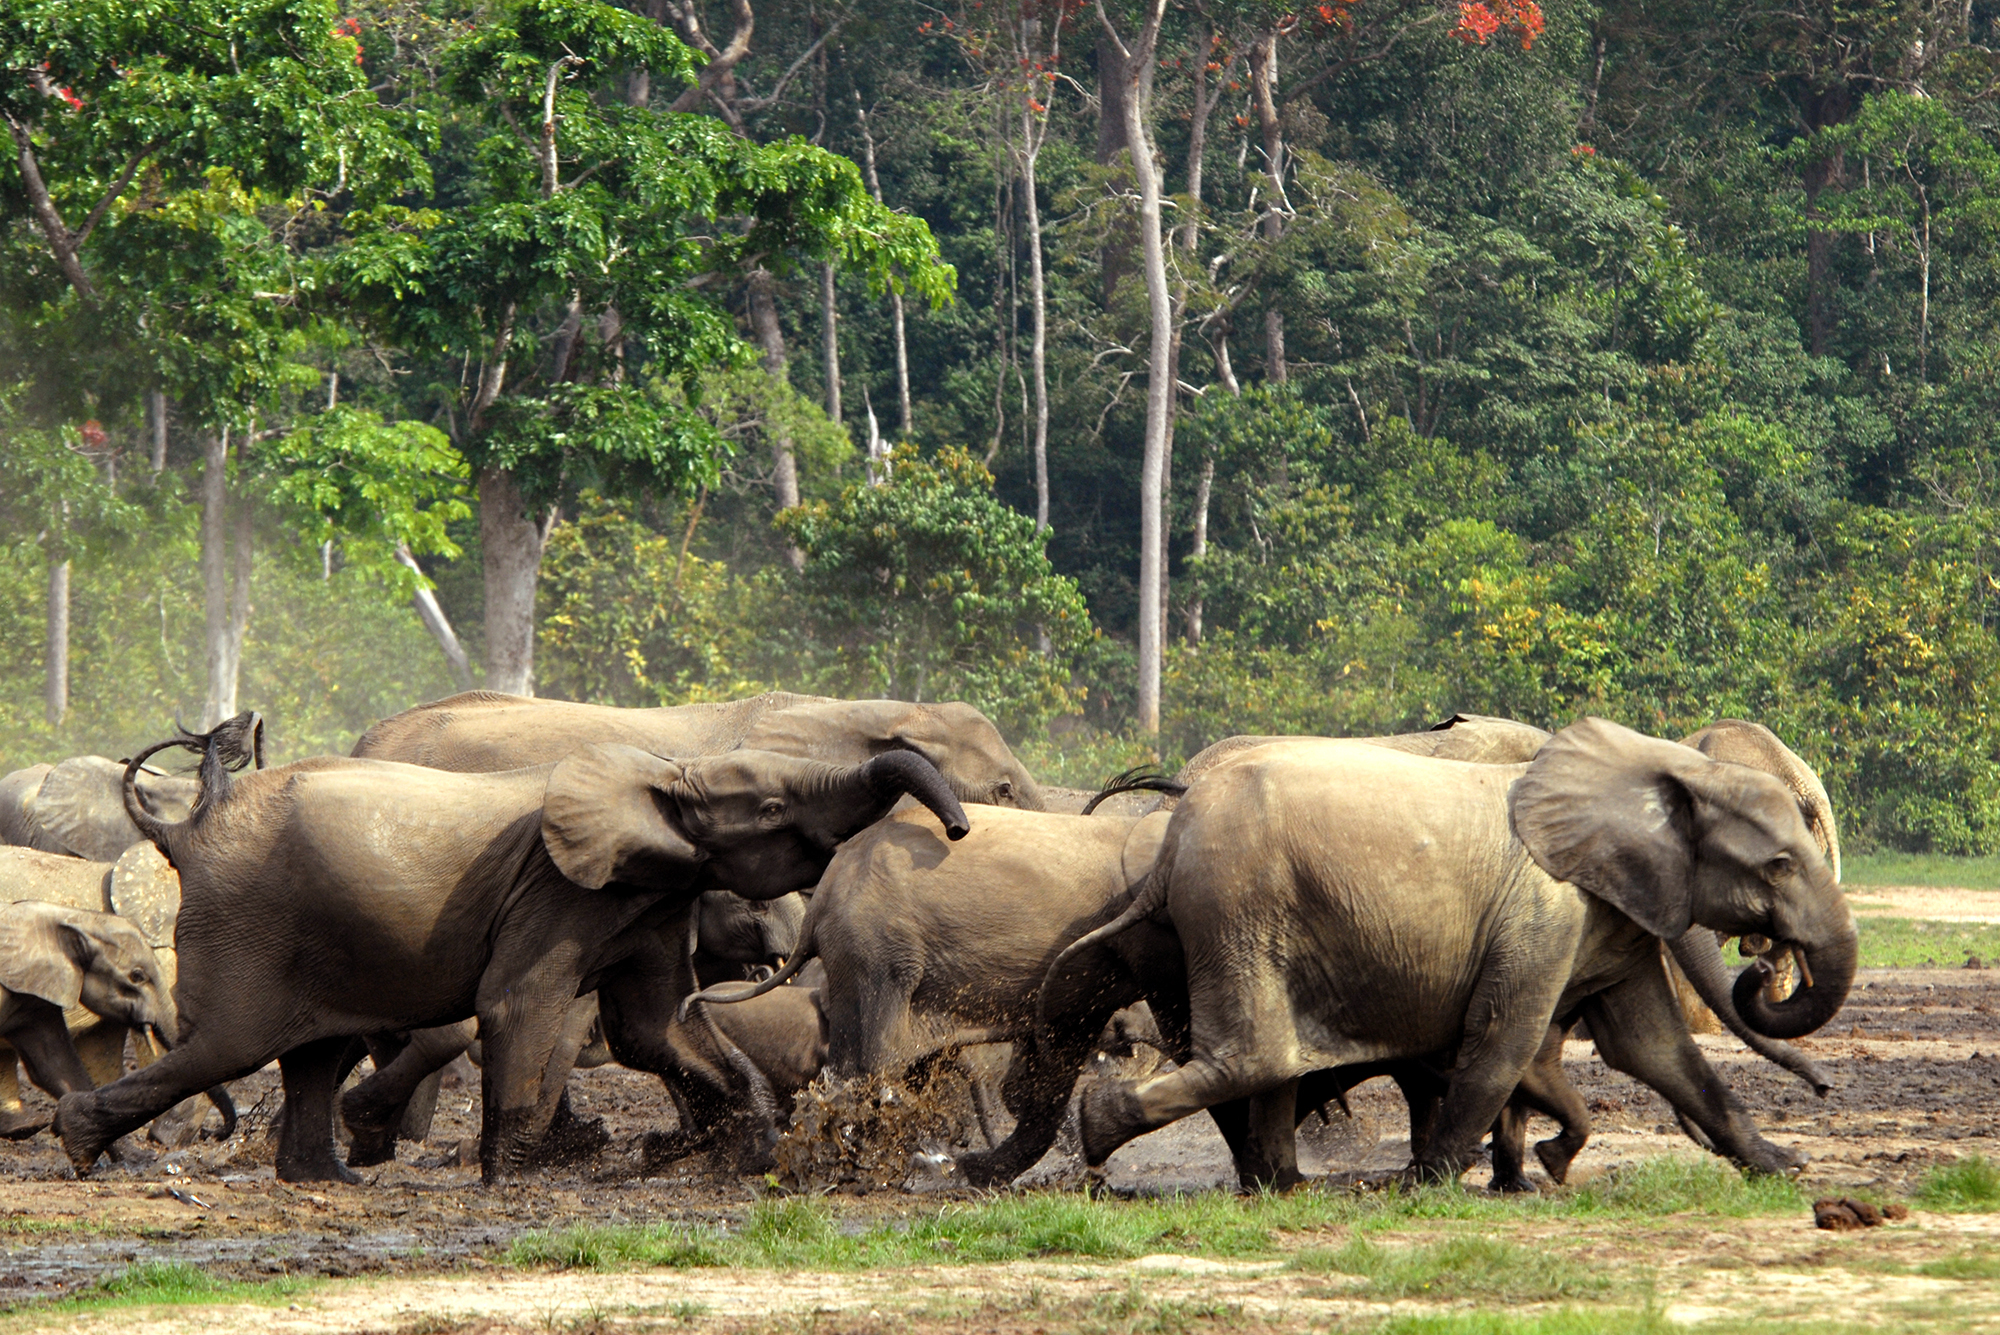 To Decode Elephant Conversation, You Must Feel The Jungle Rumble